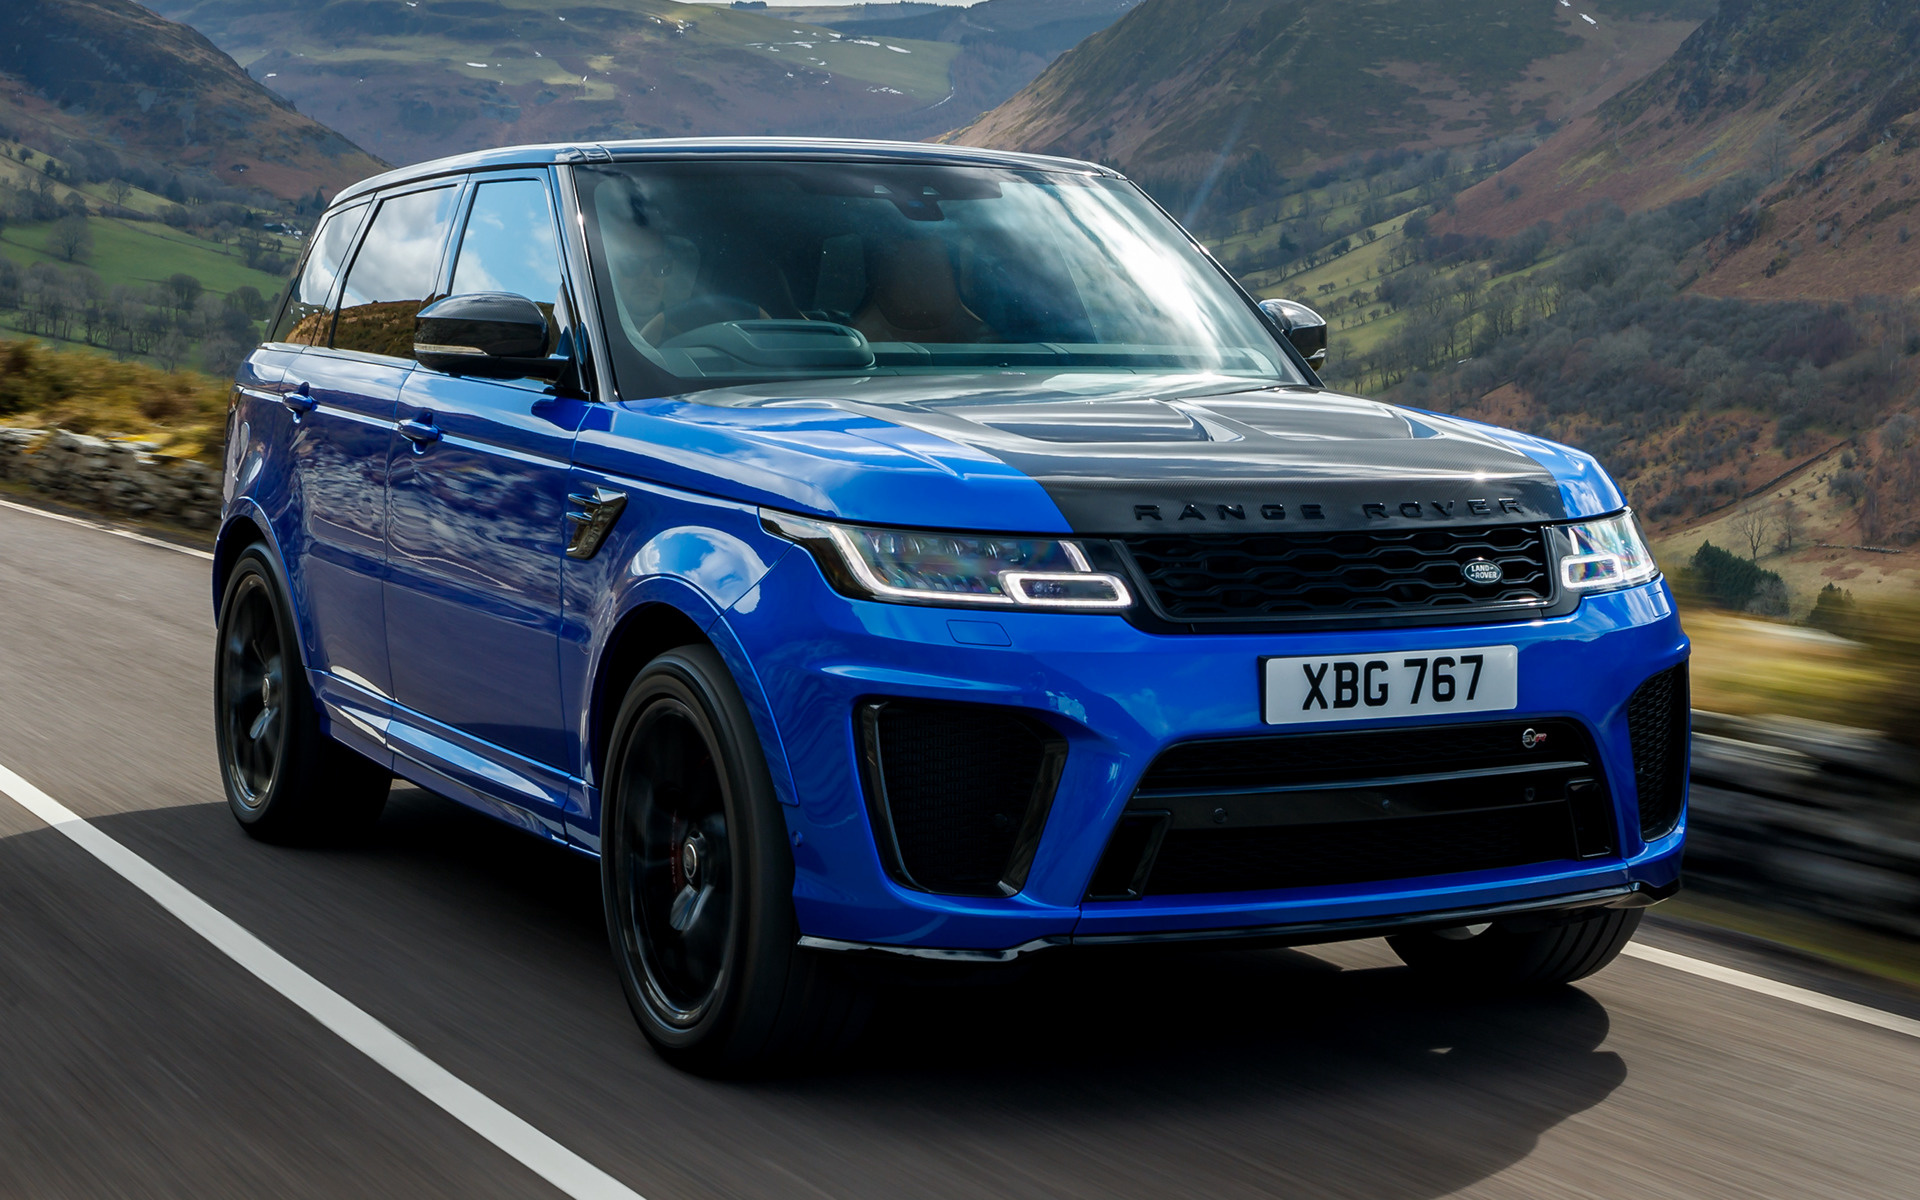 2018 Range Rover Sport SVR (UK) - Wallpapers and HD Images ...